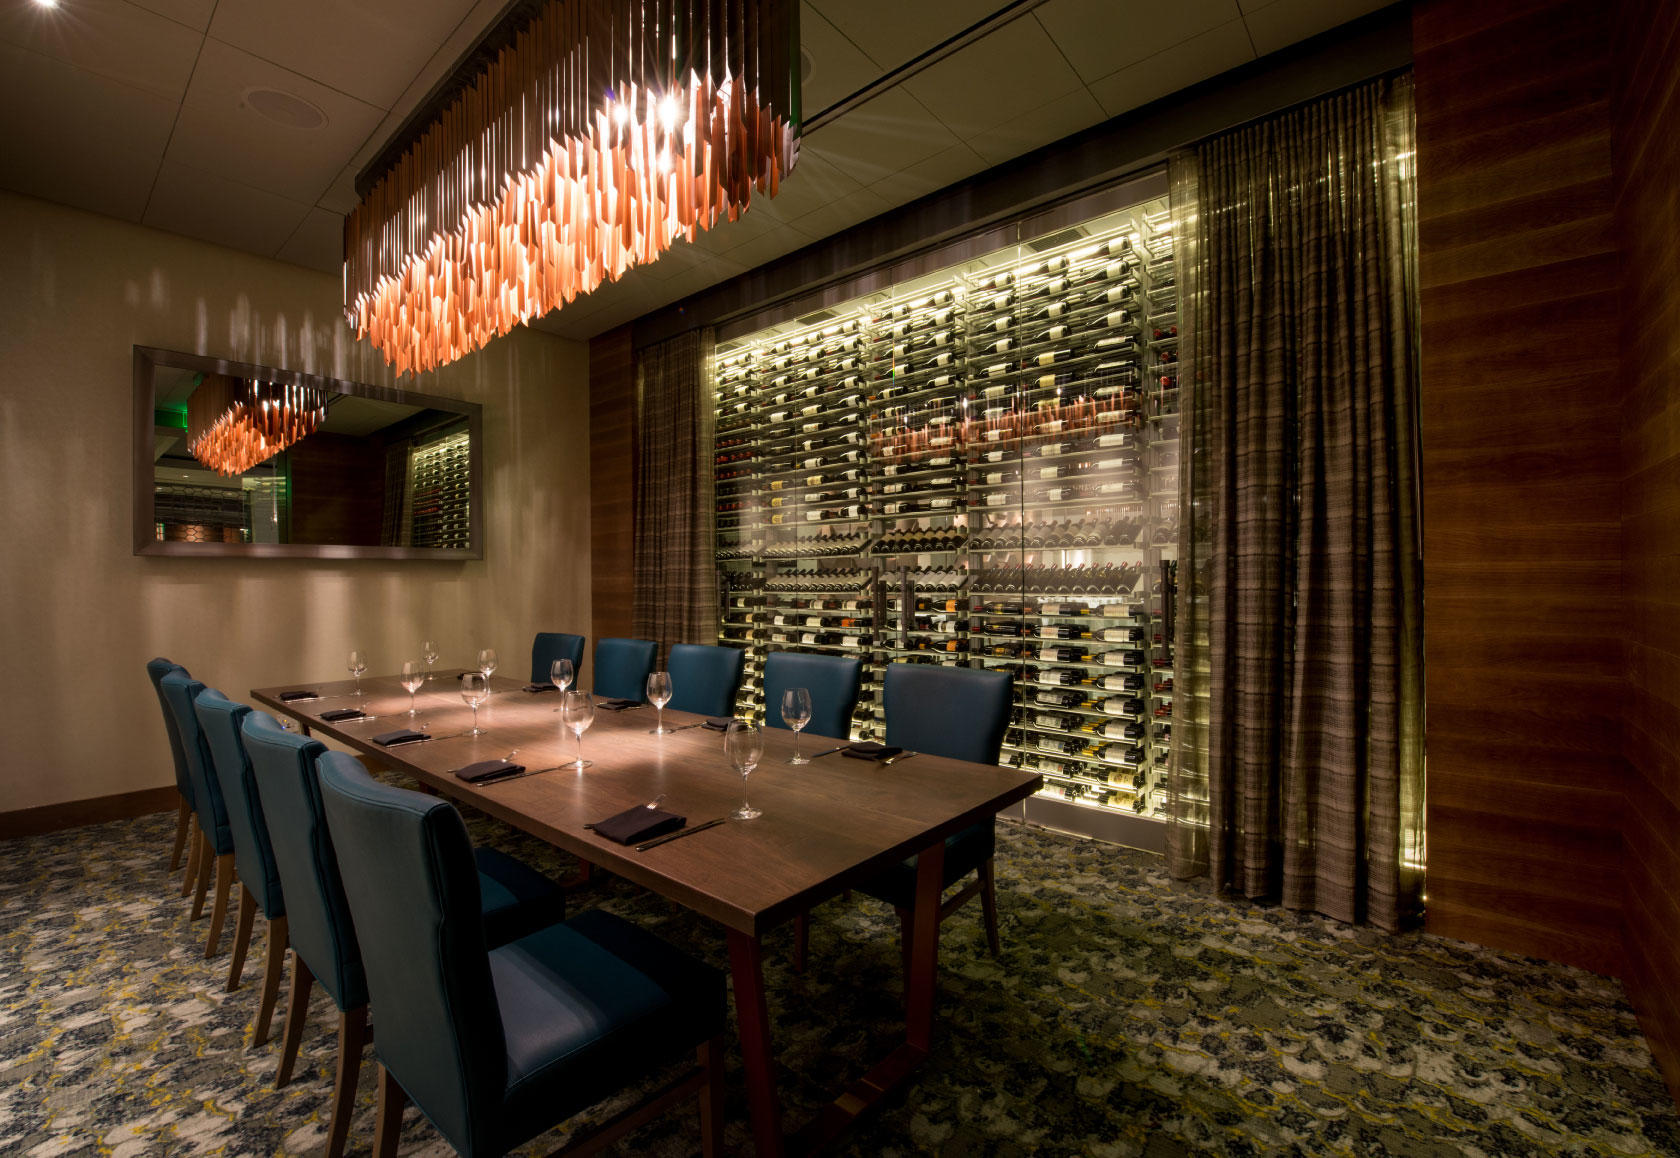 Del Frisco's Double Eagle Steakhouse Boston Commonwealth Room private dining room